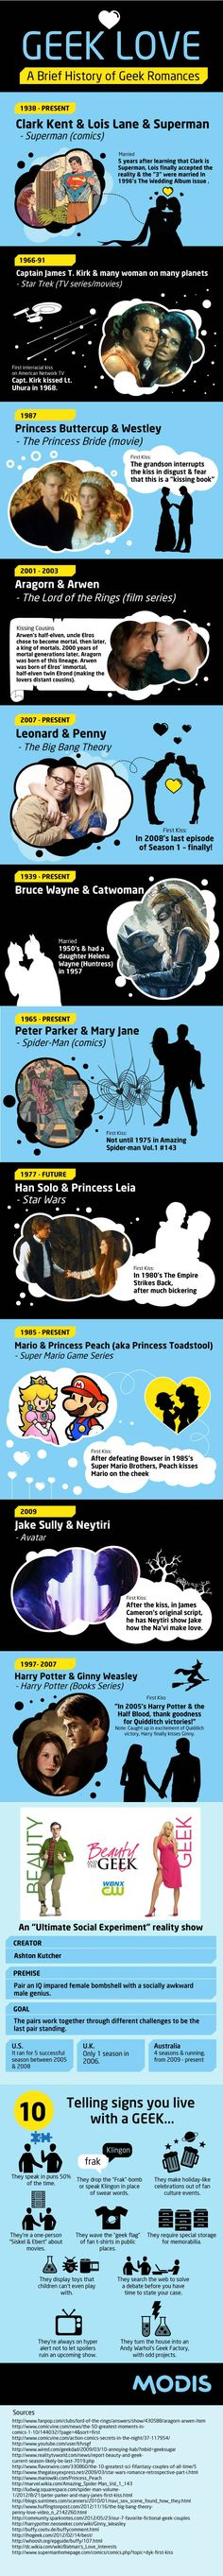 Geek Love - A Brief History of Geek Romances Infographic